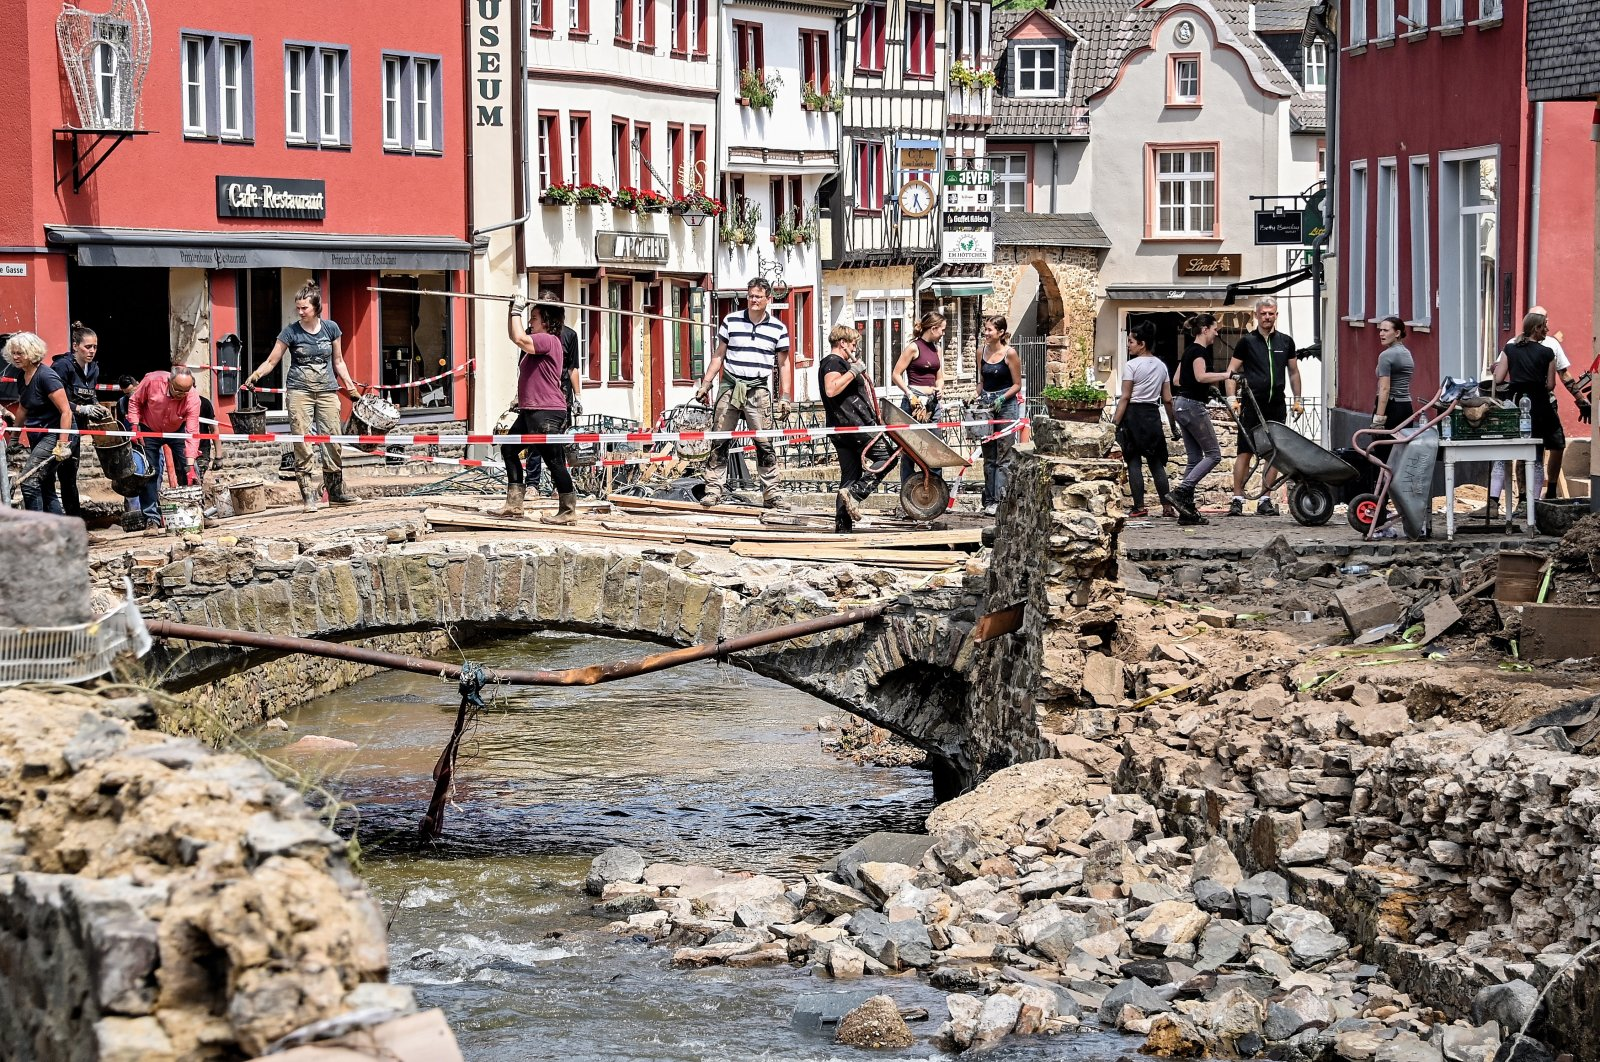 Residents clear debris out of the way after heavy flooding of the Erft River caused severe destruction in the village of Bad Muenstereifel, Euskirchen district, Germany, July 20, 2021. (EPA Photo)